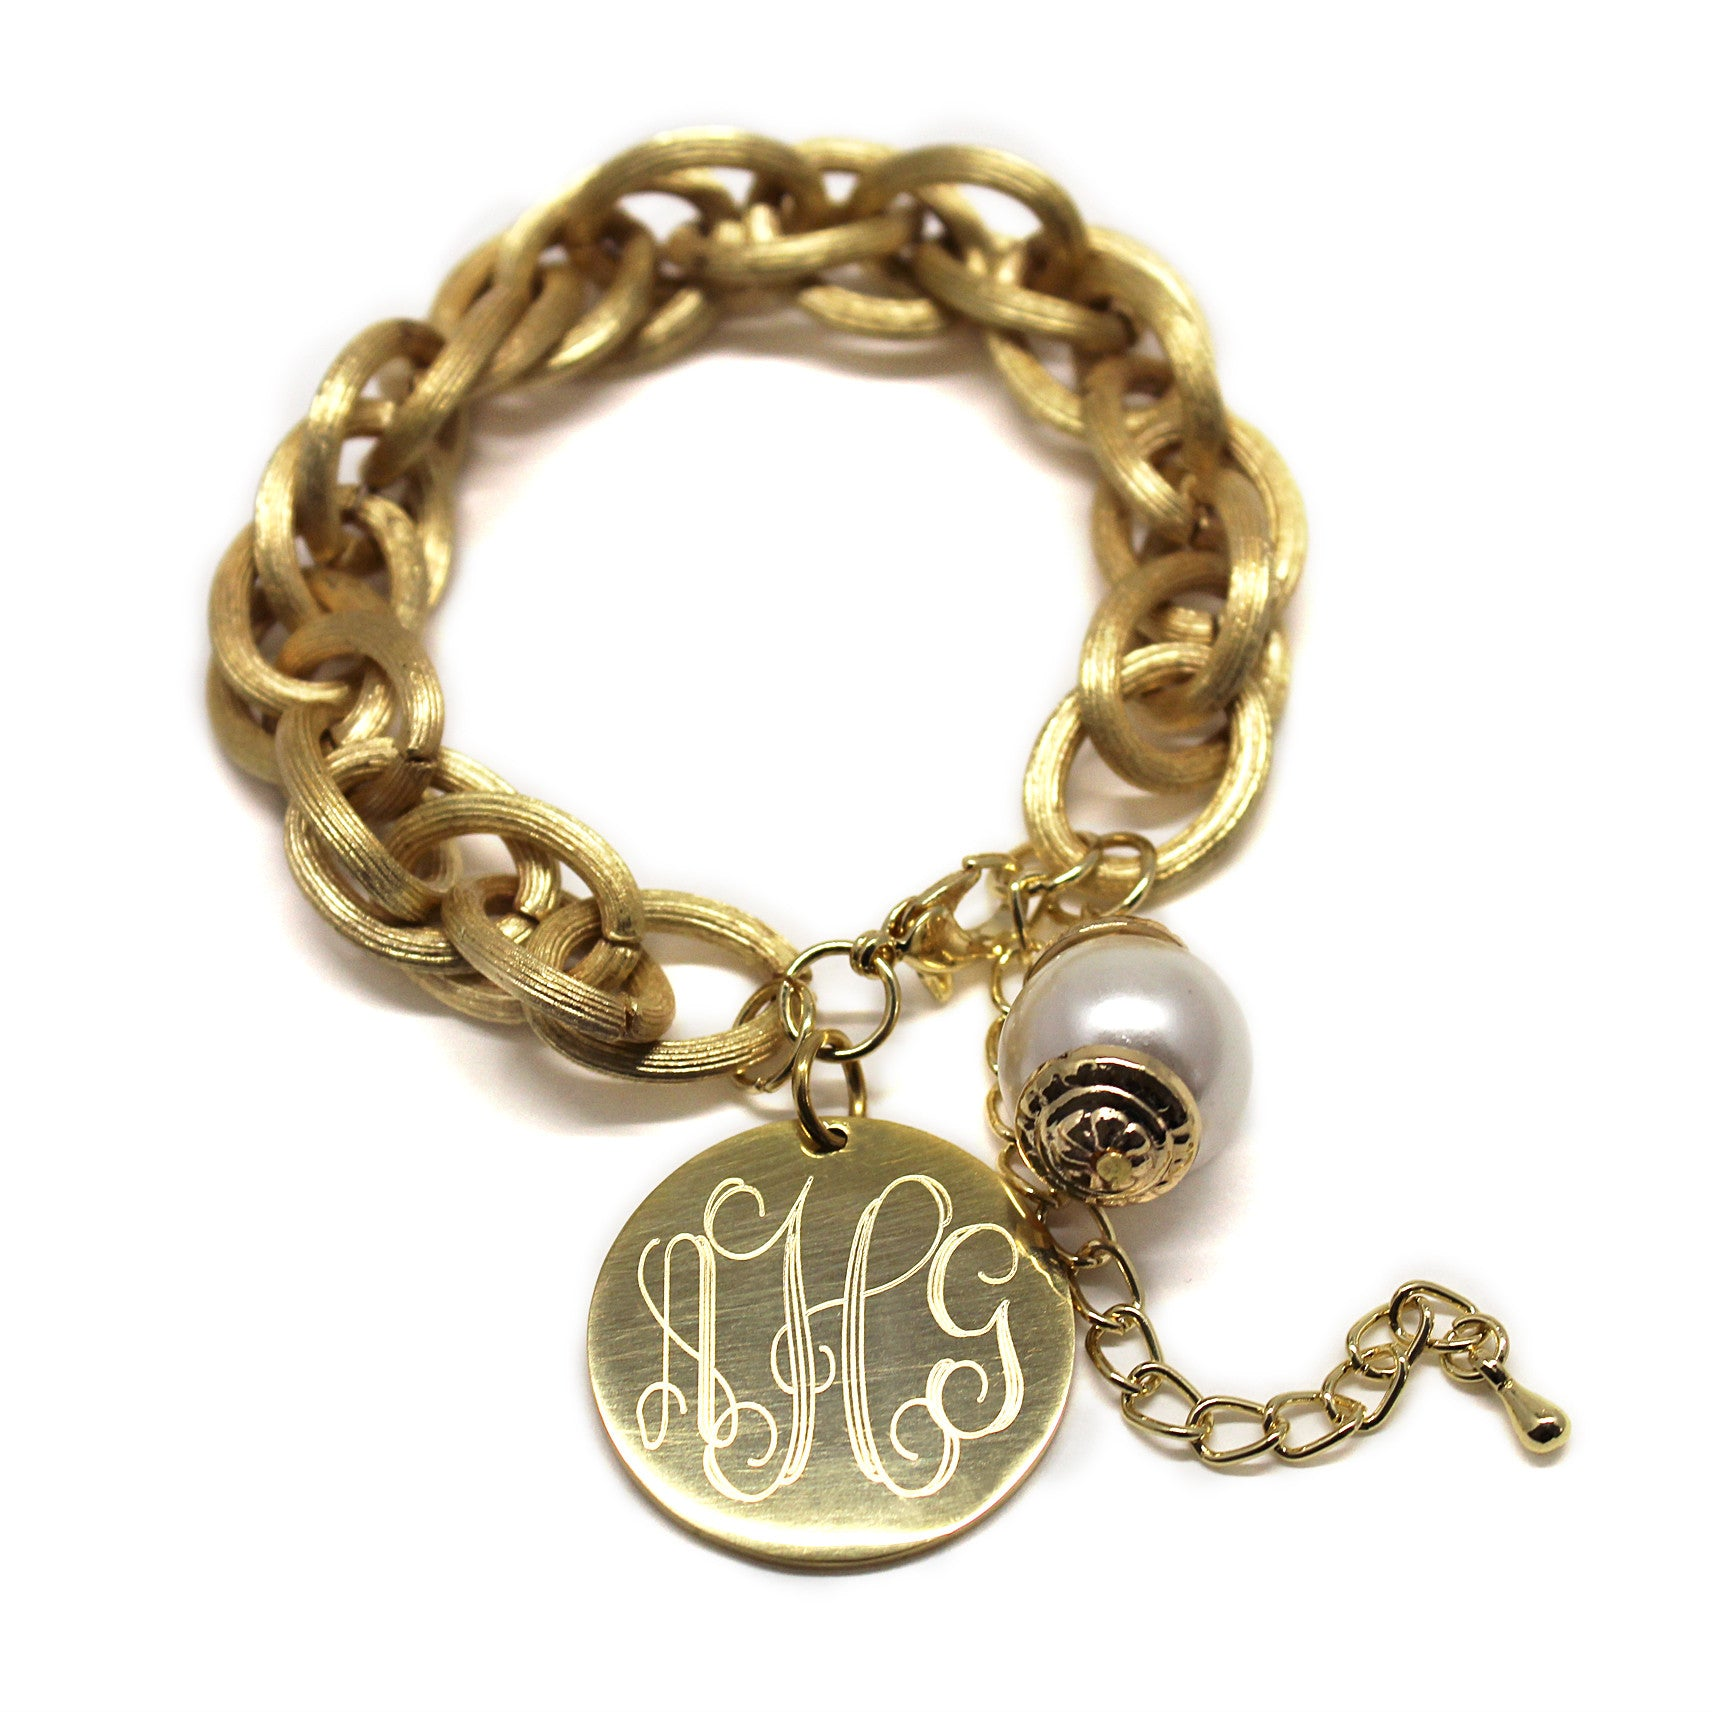 monogram enlarged spirit jewelry cuff bracelets louis nano vuitton bracelet products